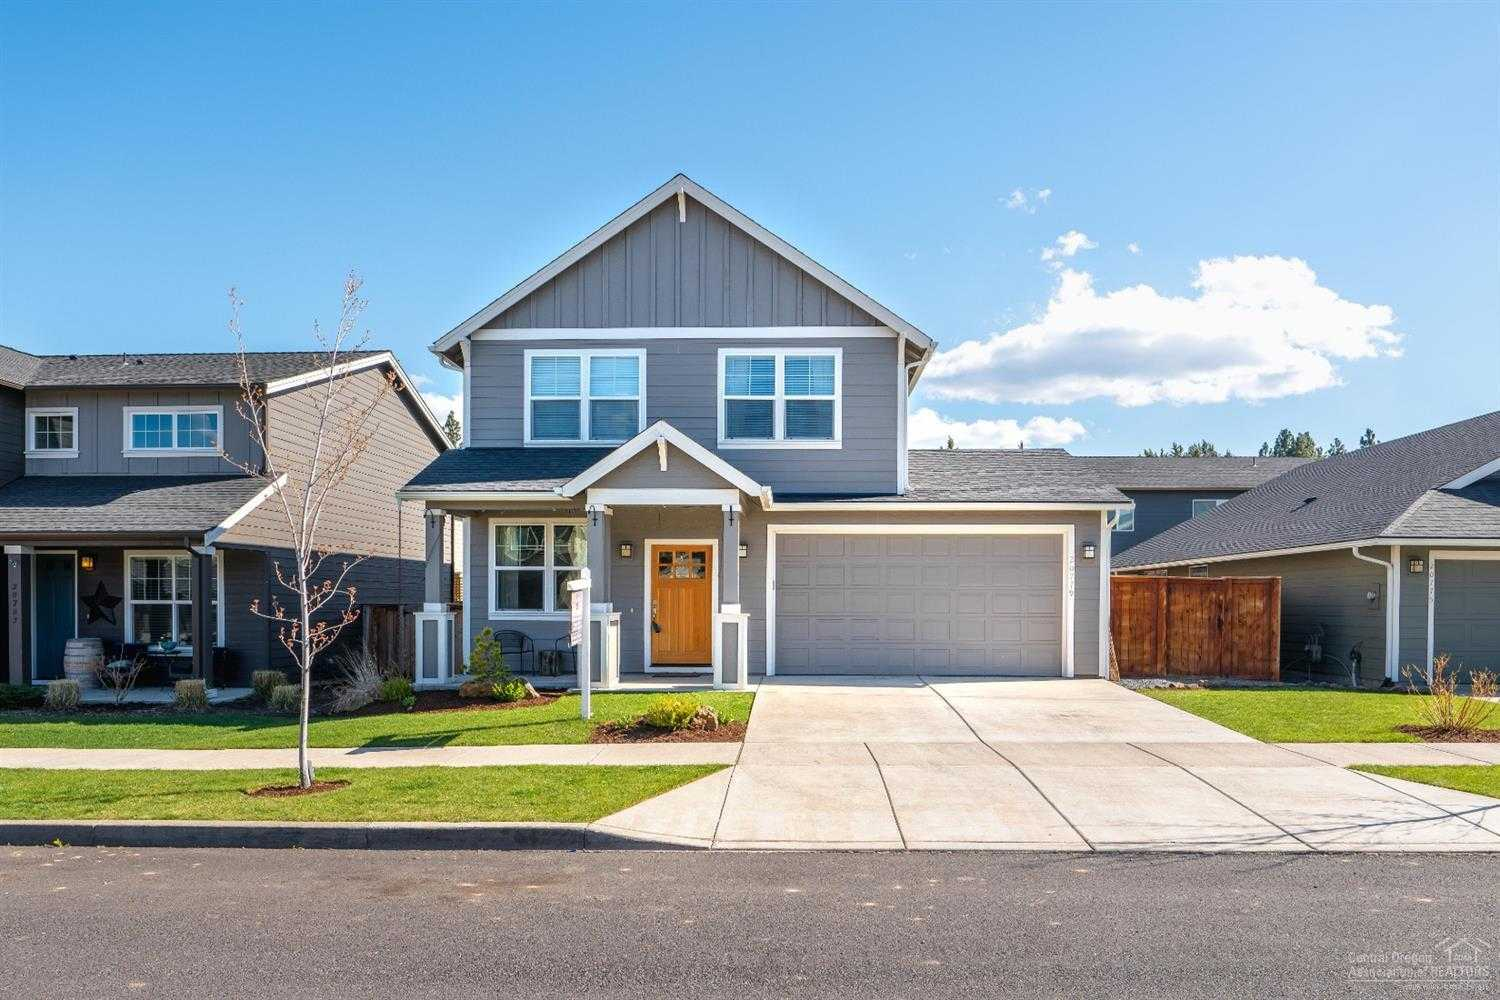 $400,000 - 3Br/3Ba -  for Sale in Bend